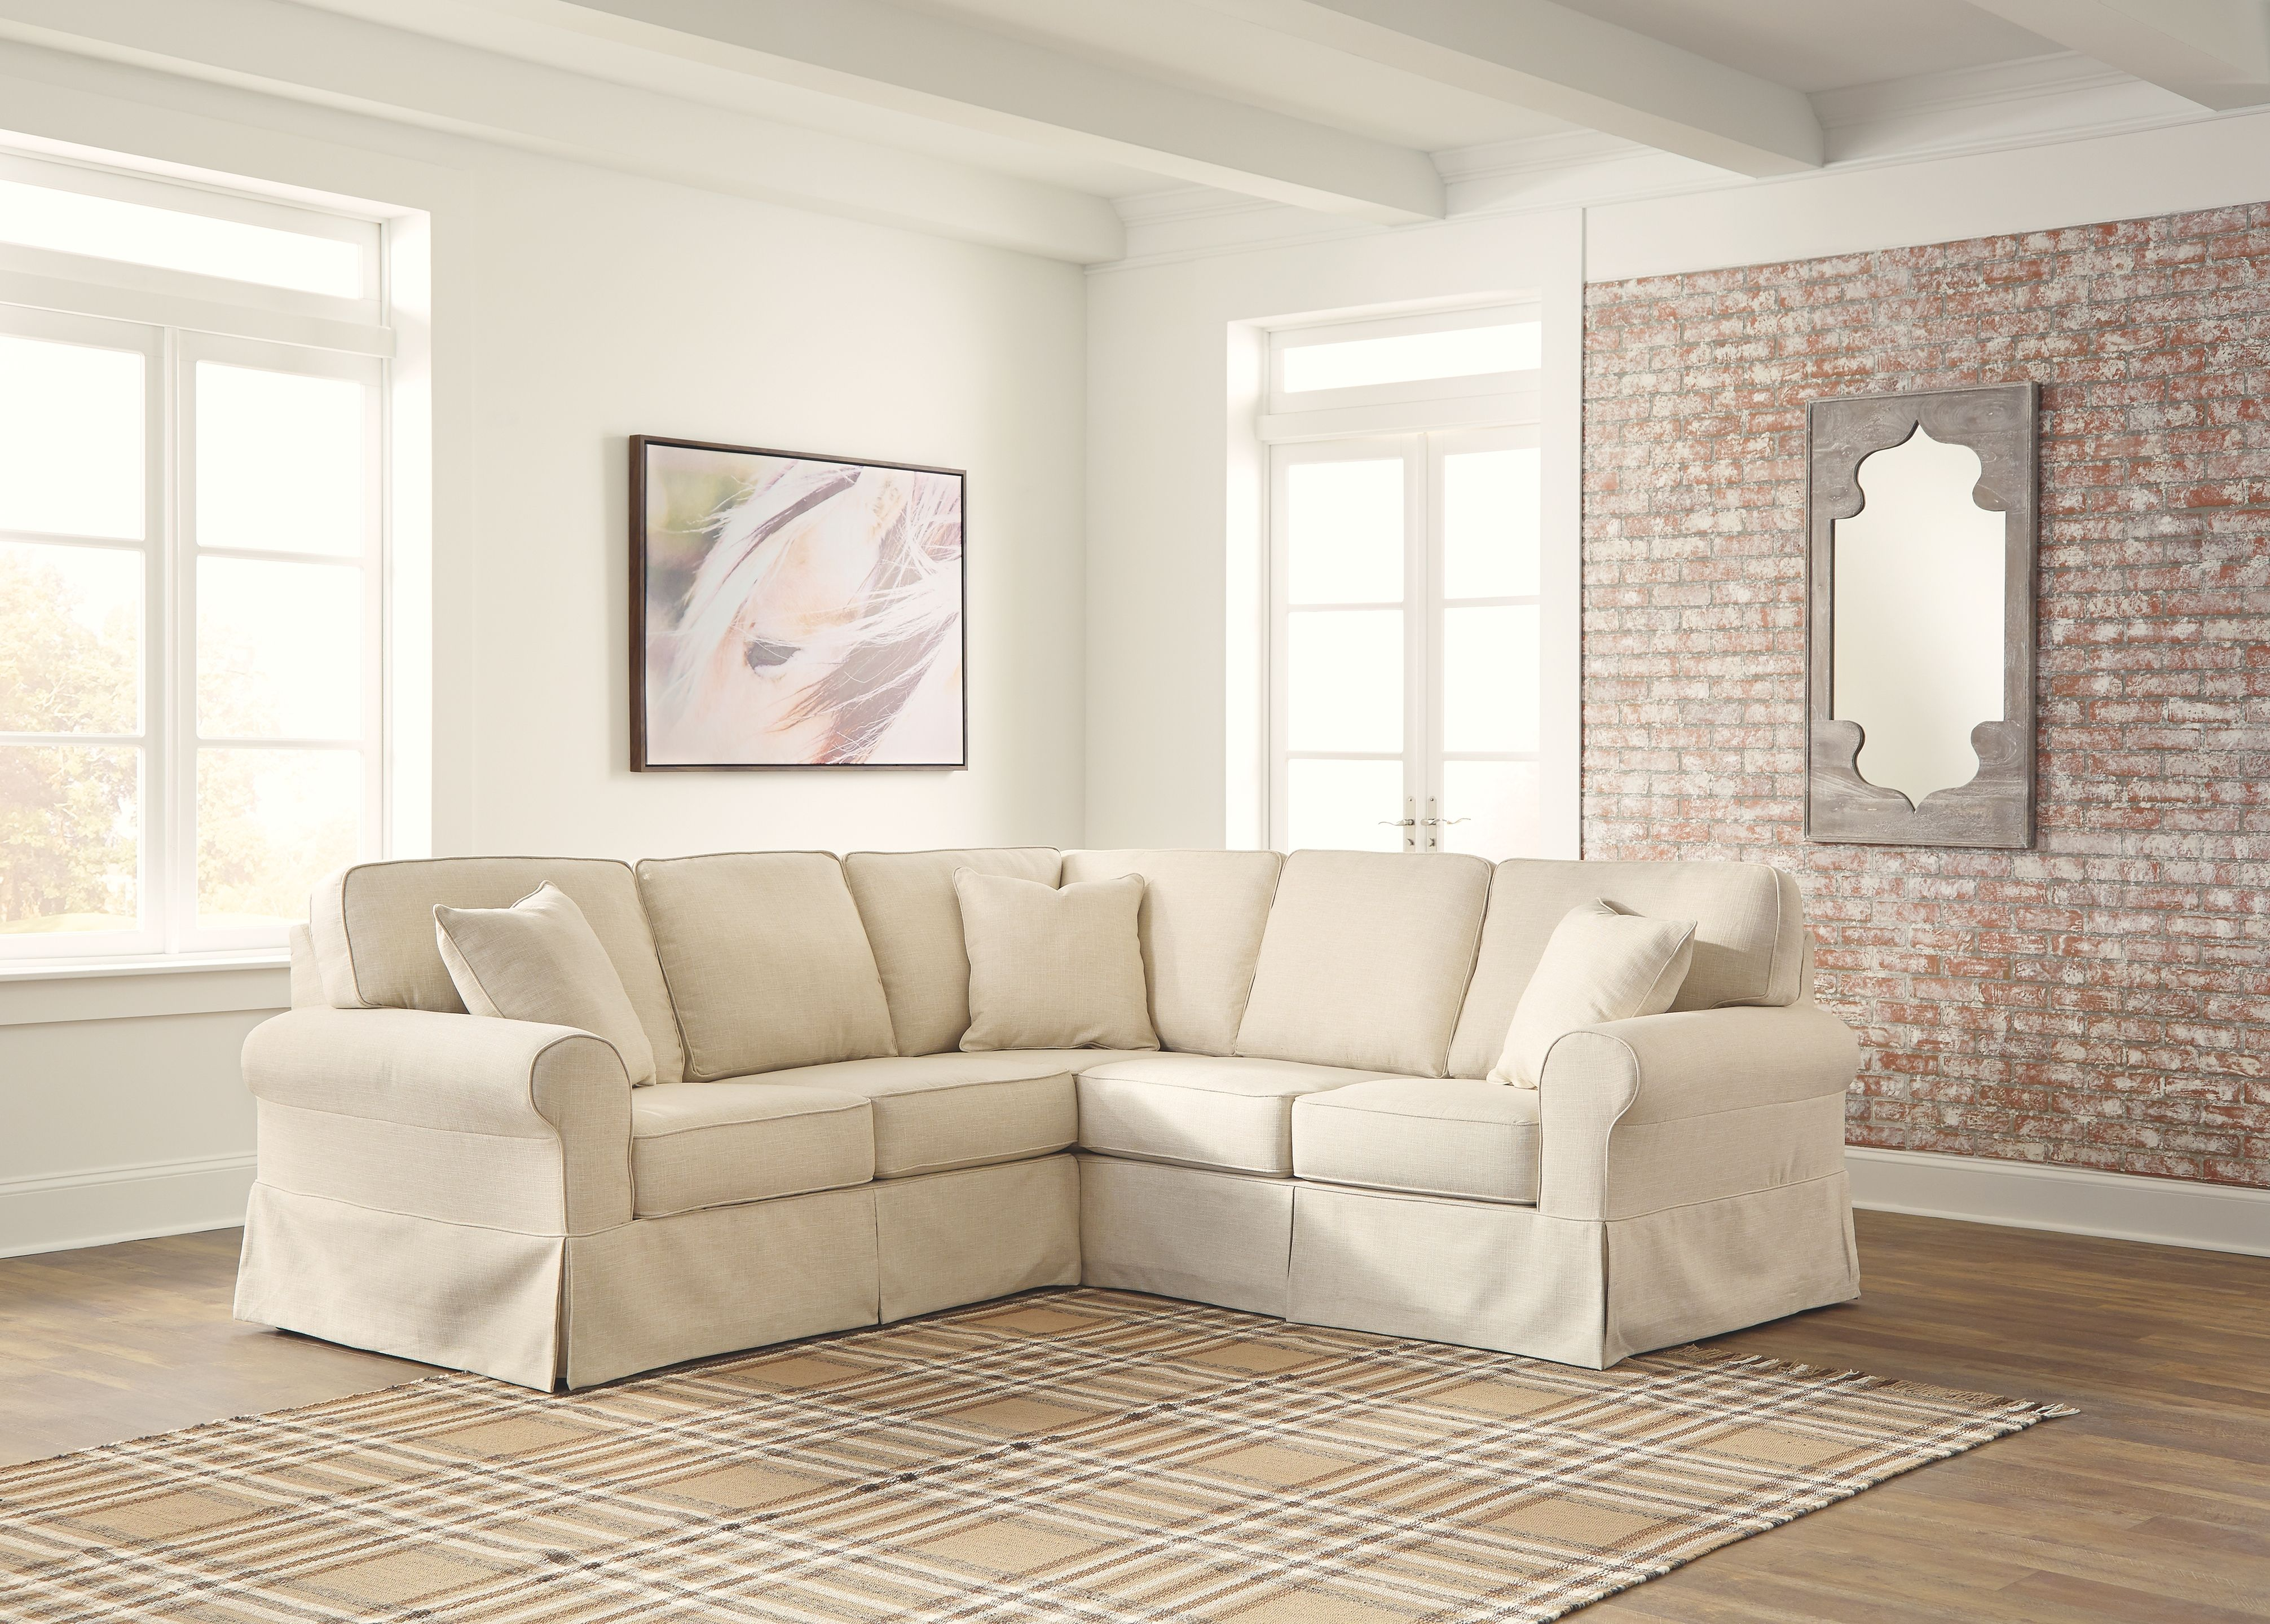 Shermyla 2-Piece Sectional, Linen   Products   Sectional ...